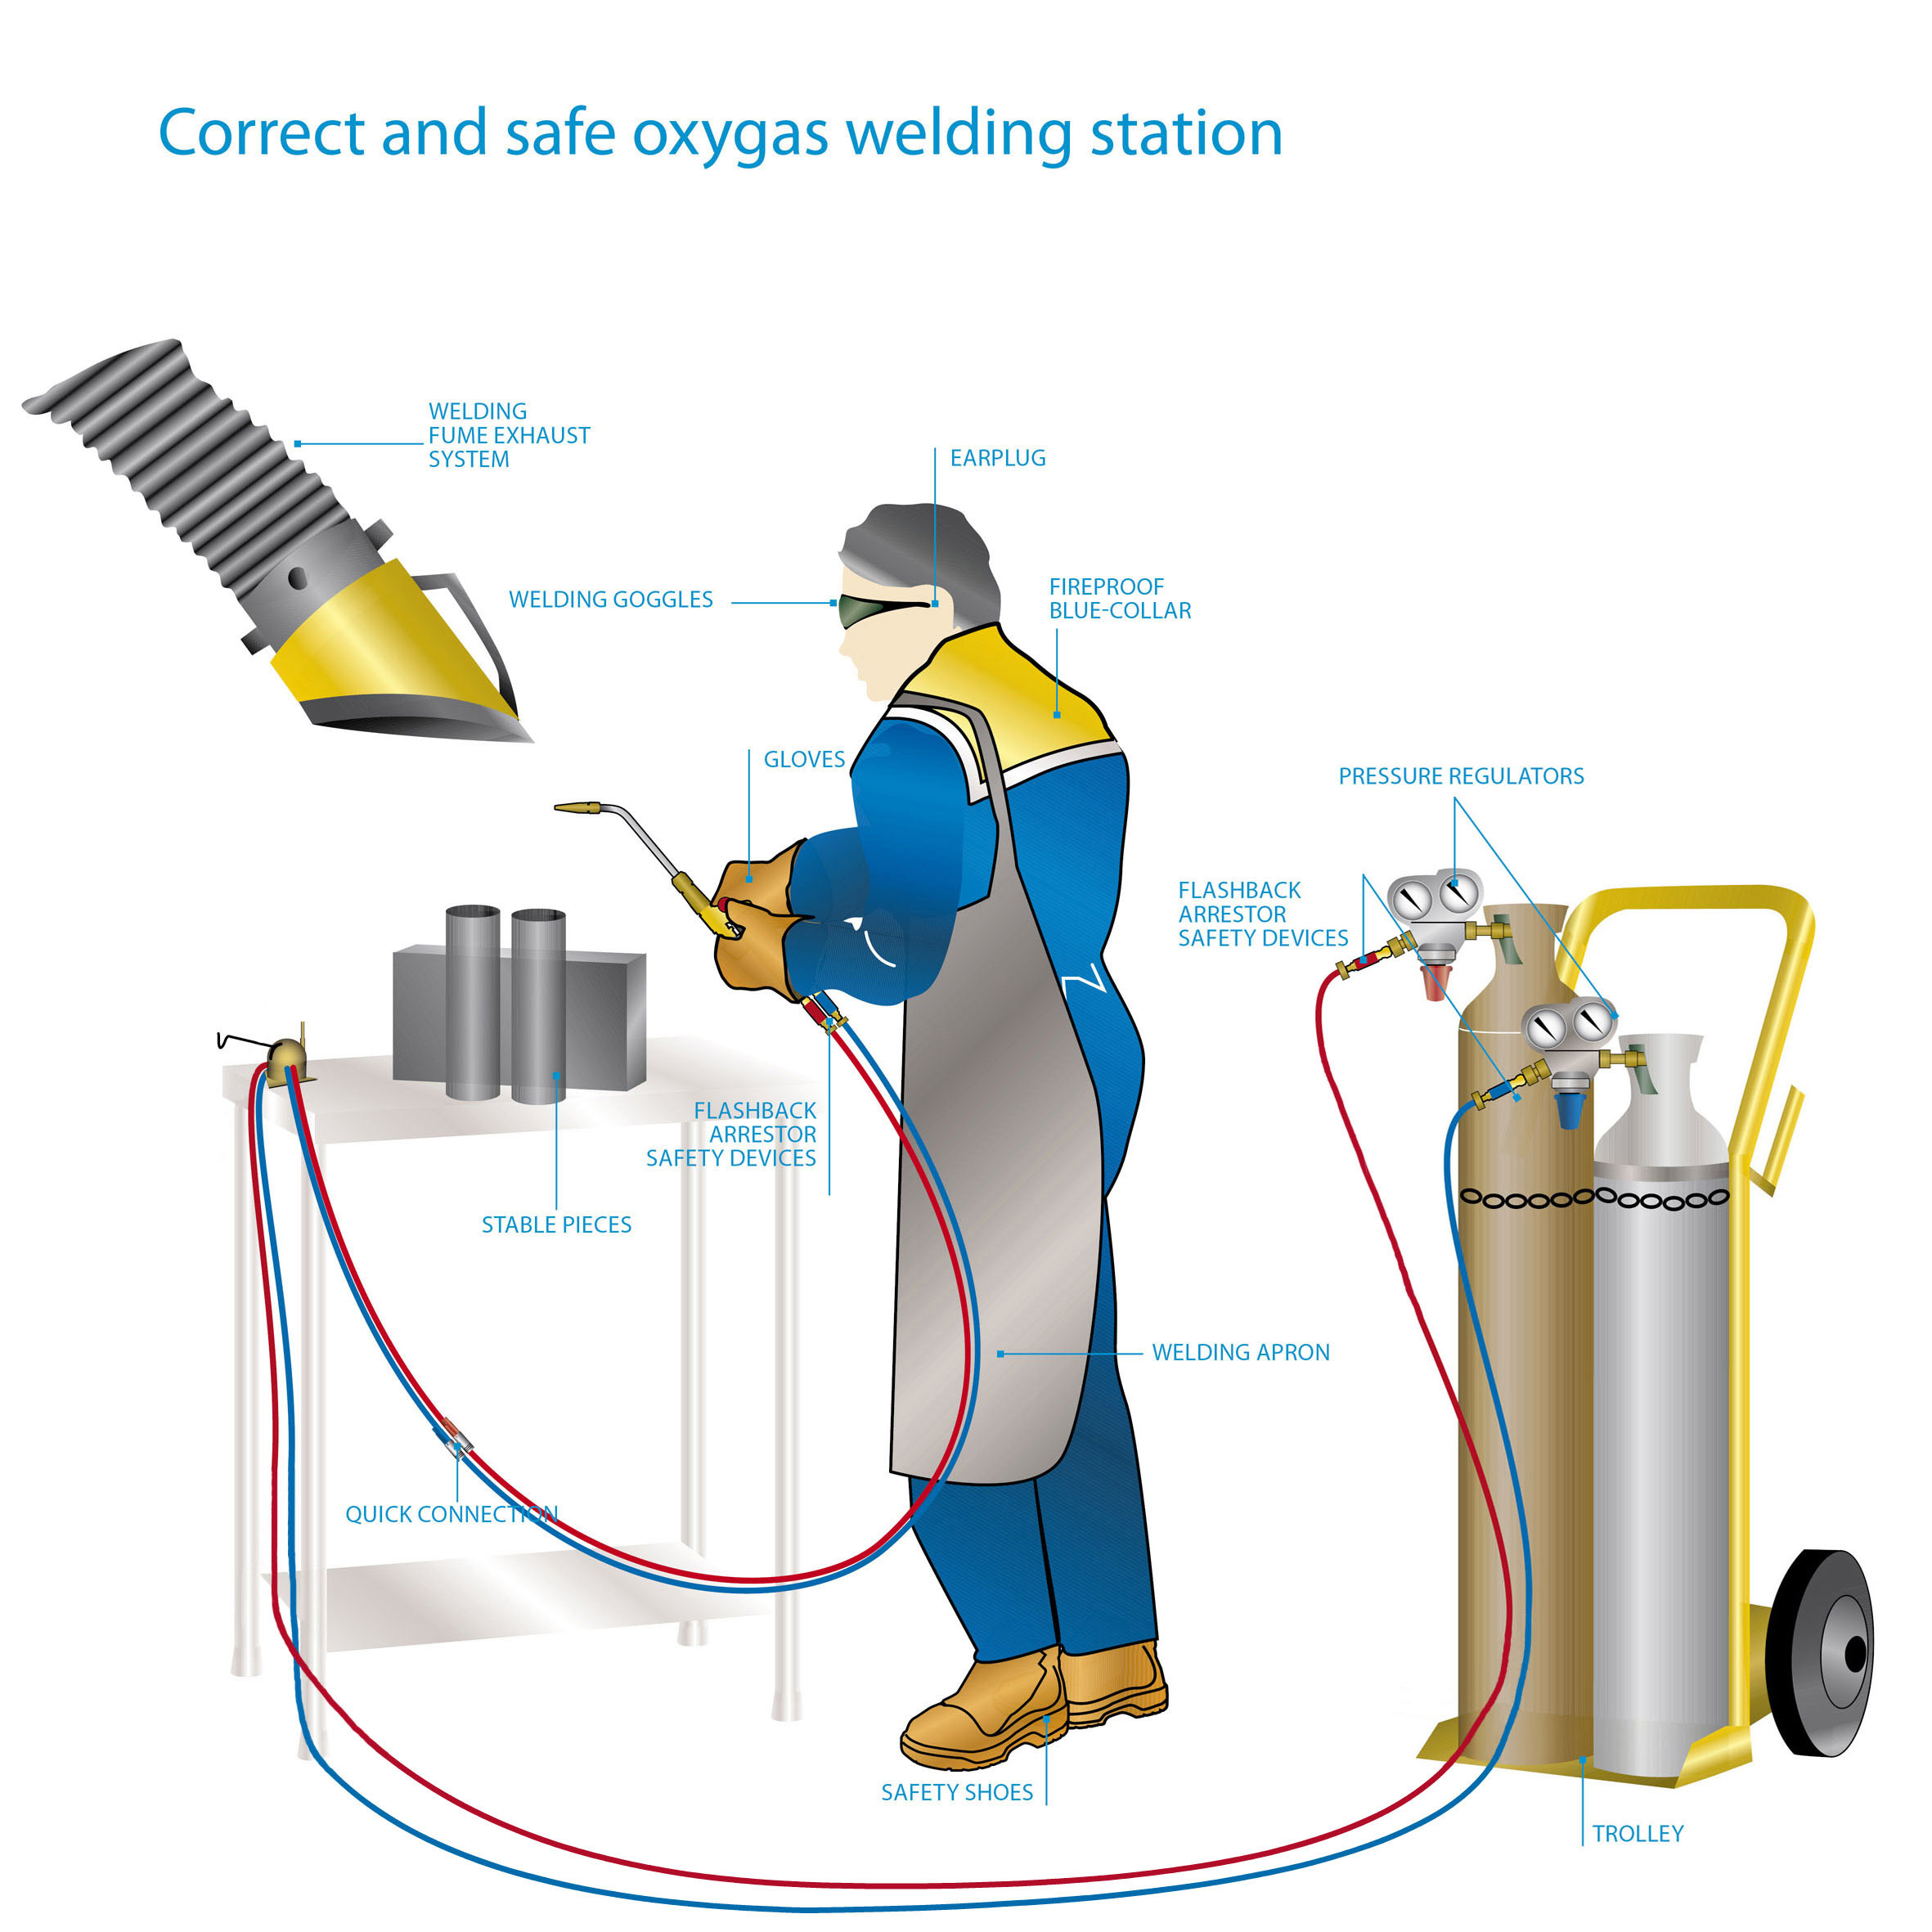 File Oxygas Welding Station Fix Jpg Wikimedia Commons